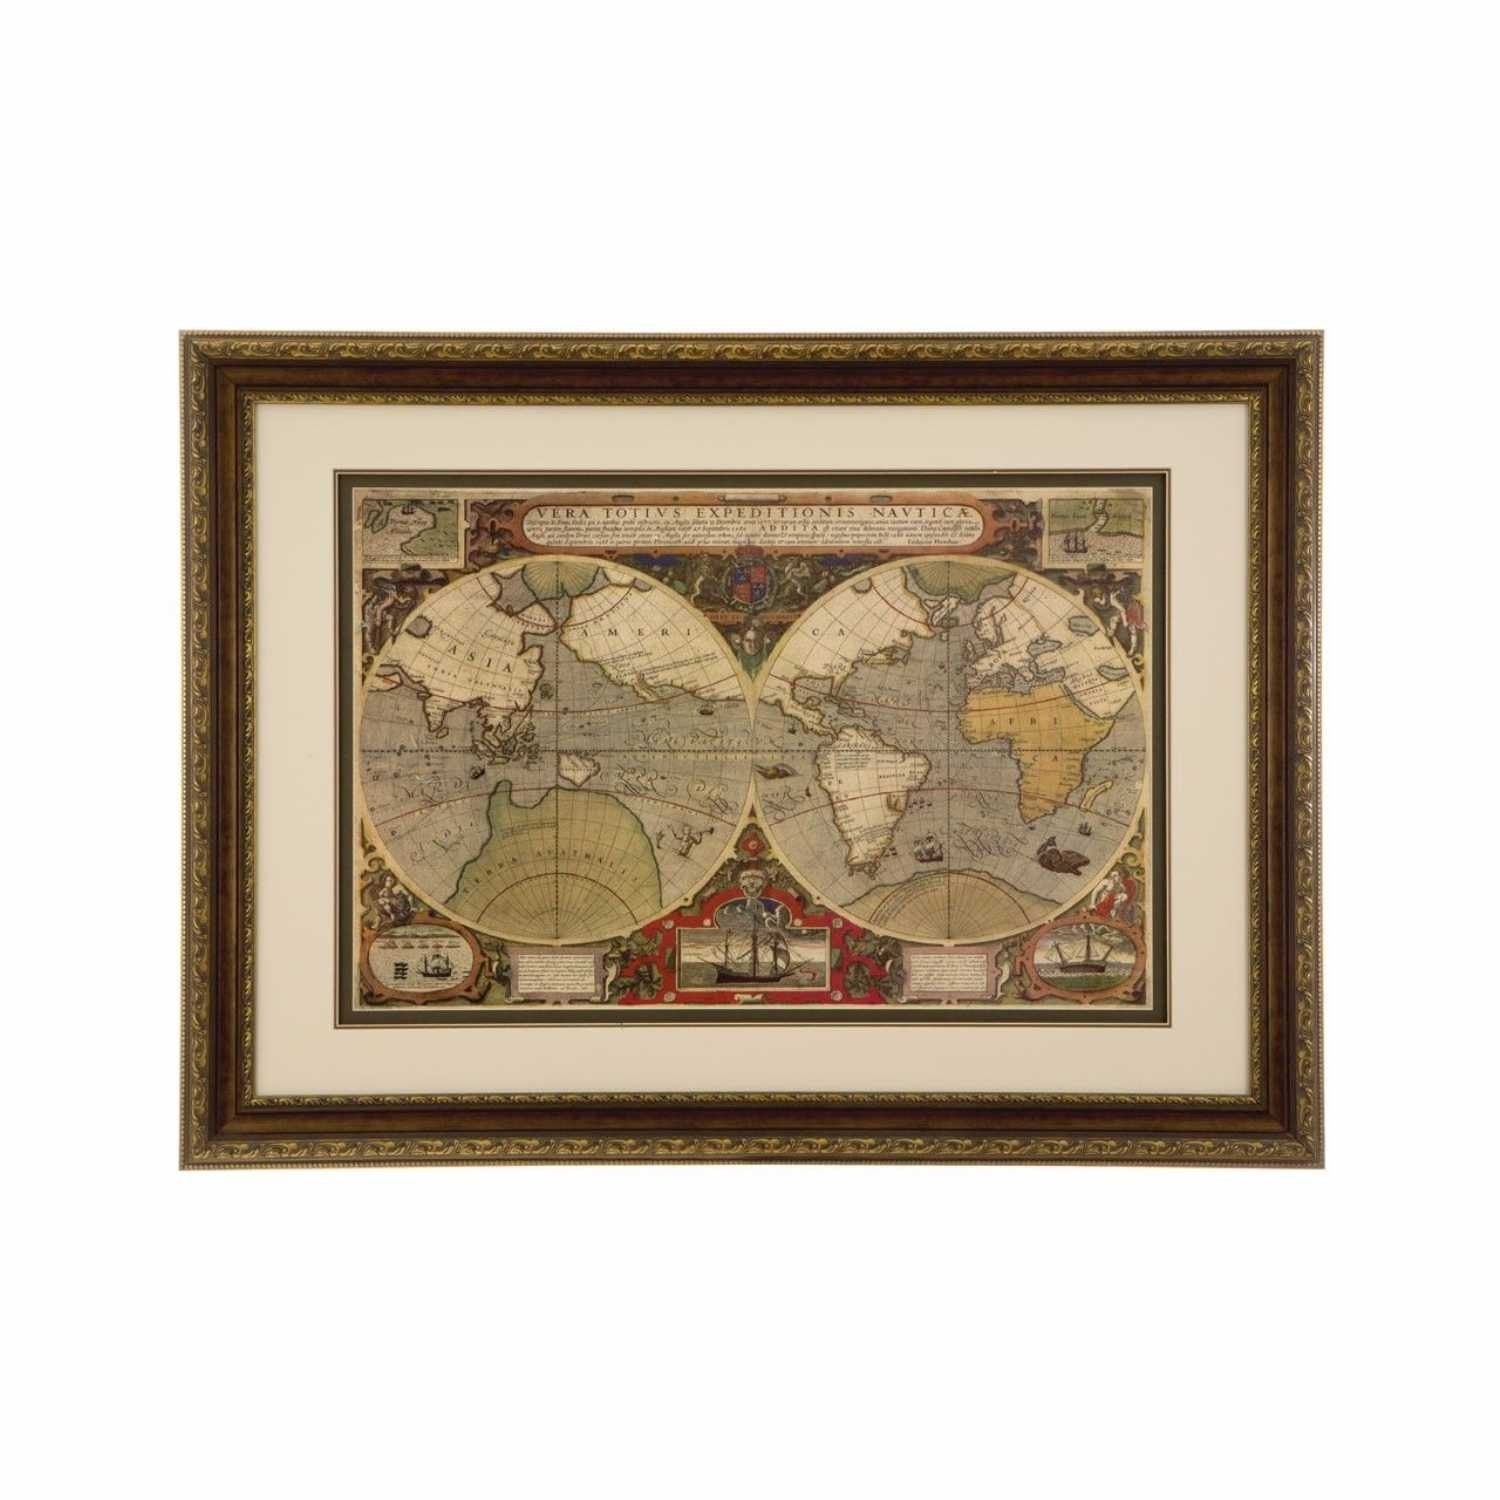 World Map Framed Art Framed World Map Wall Art – Anotherview For World Map Wall Art Framed (Photo 13 of 20)